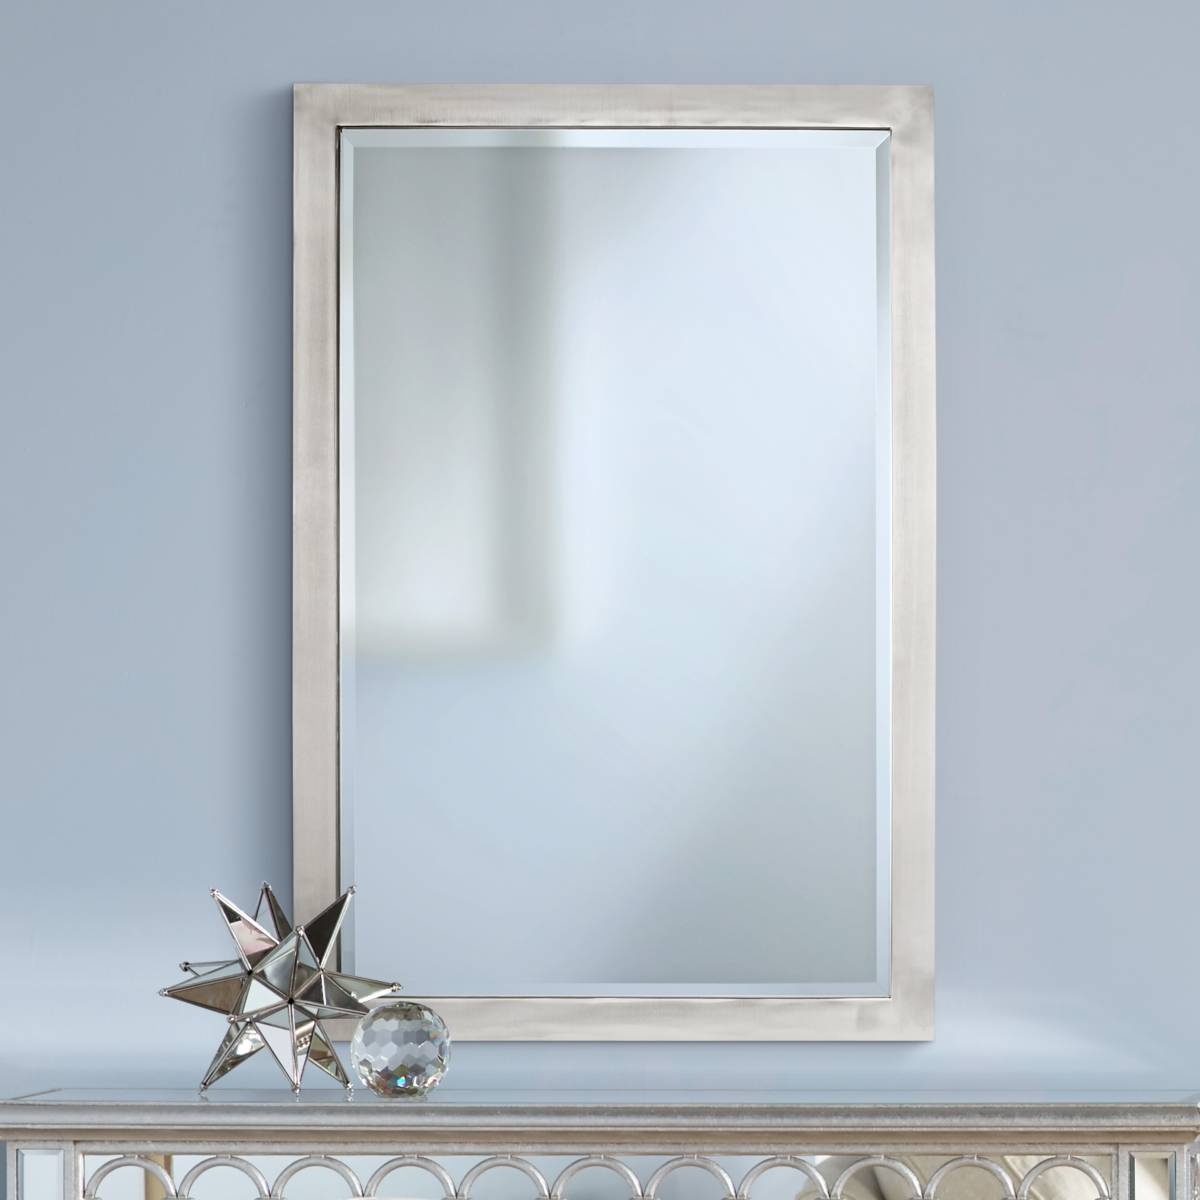 Deco Bathroom Mirror: Vanity Designs For Bath And Dressing